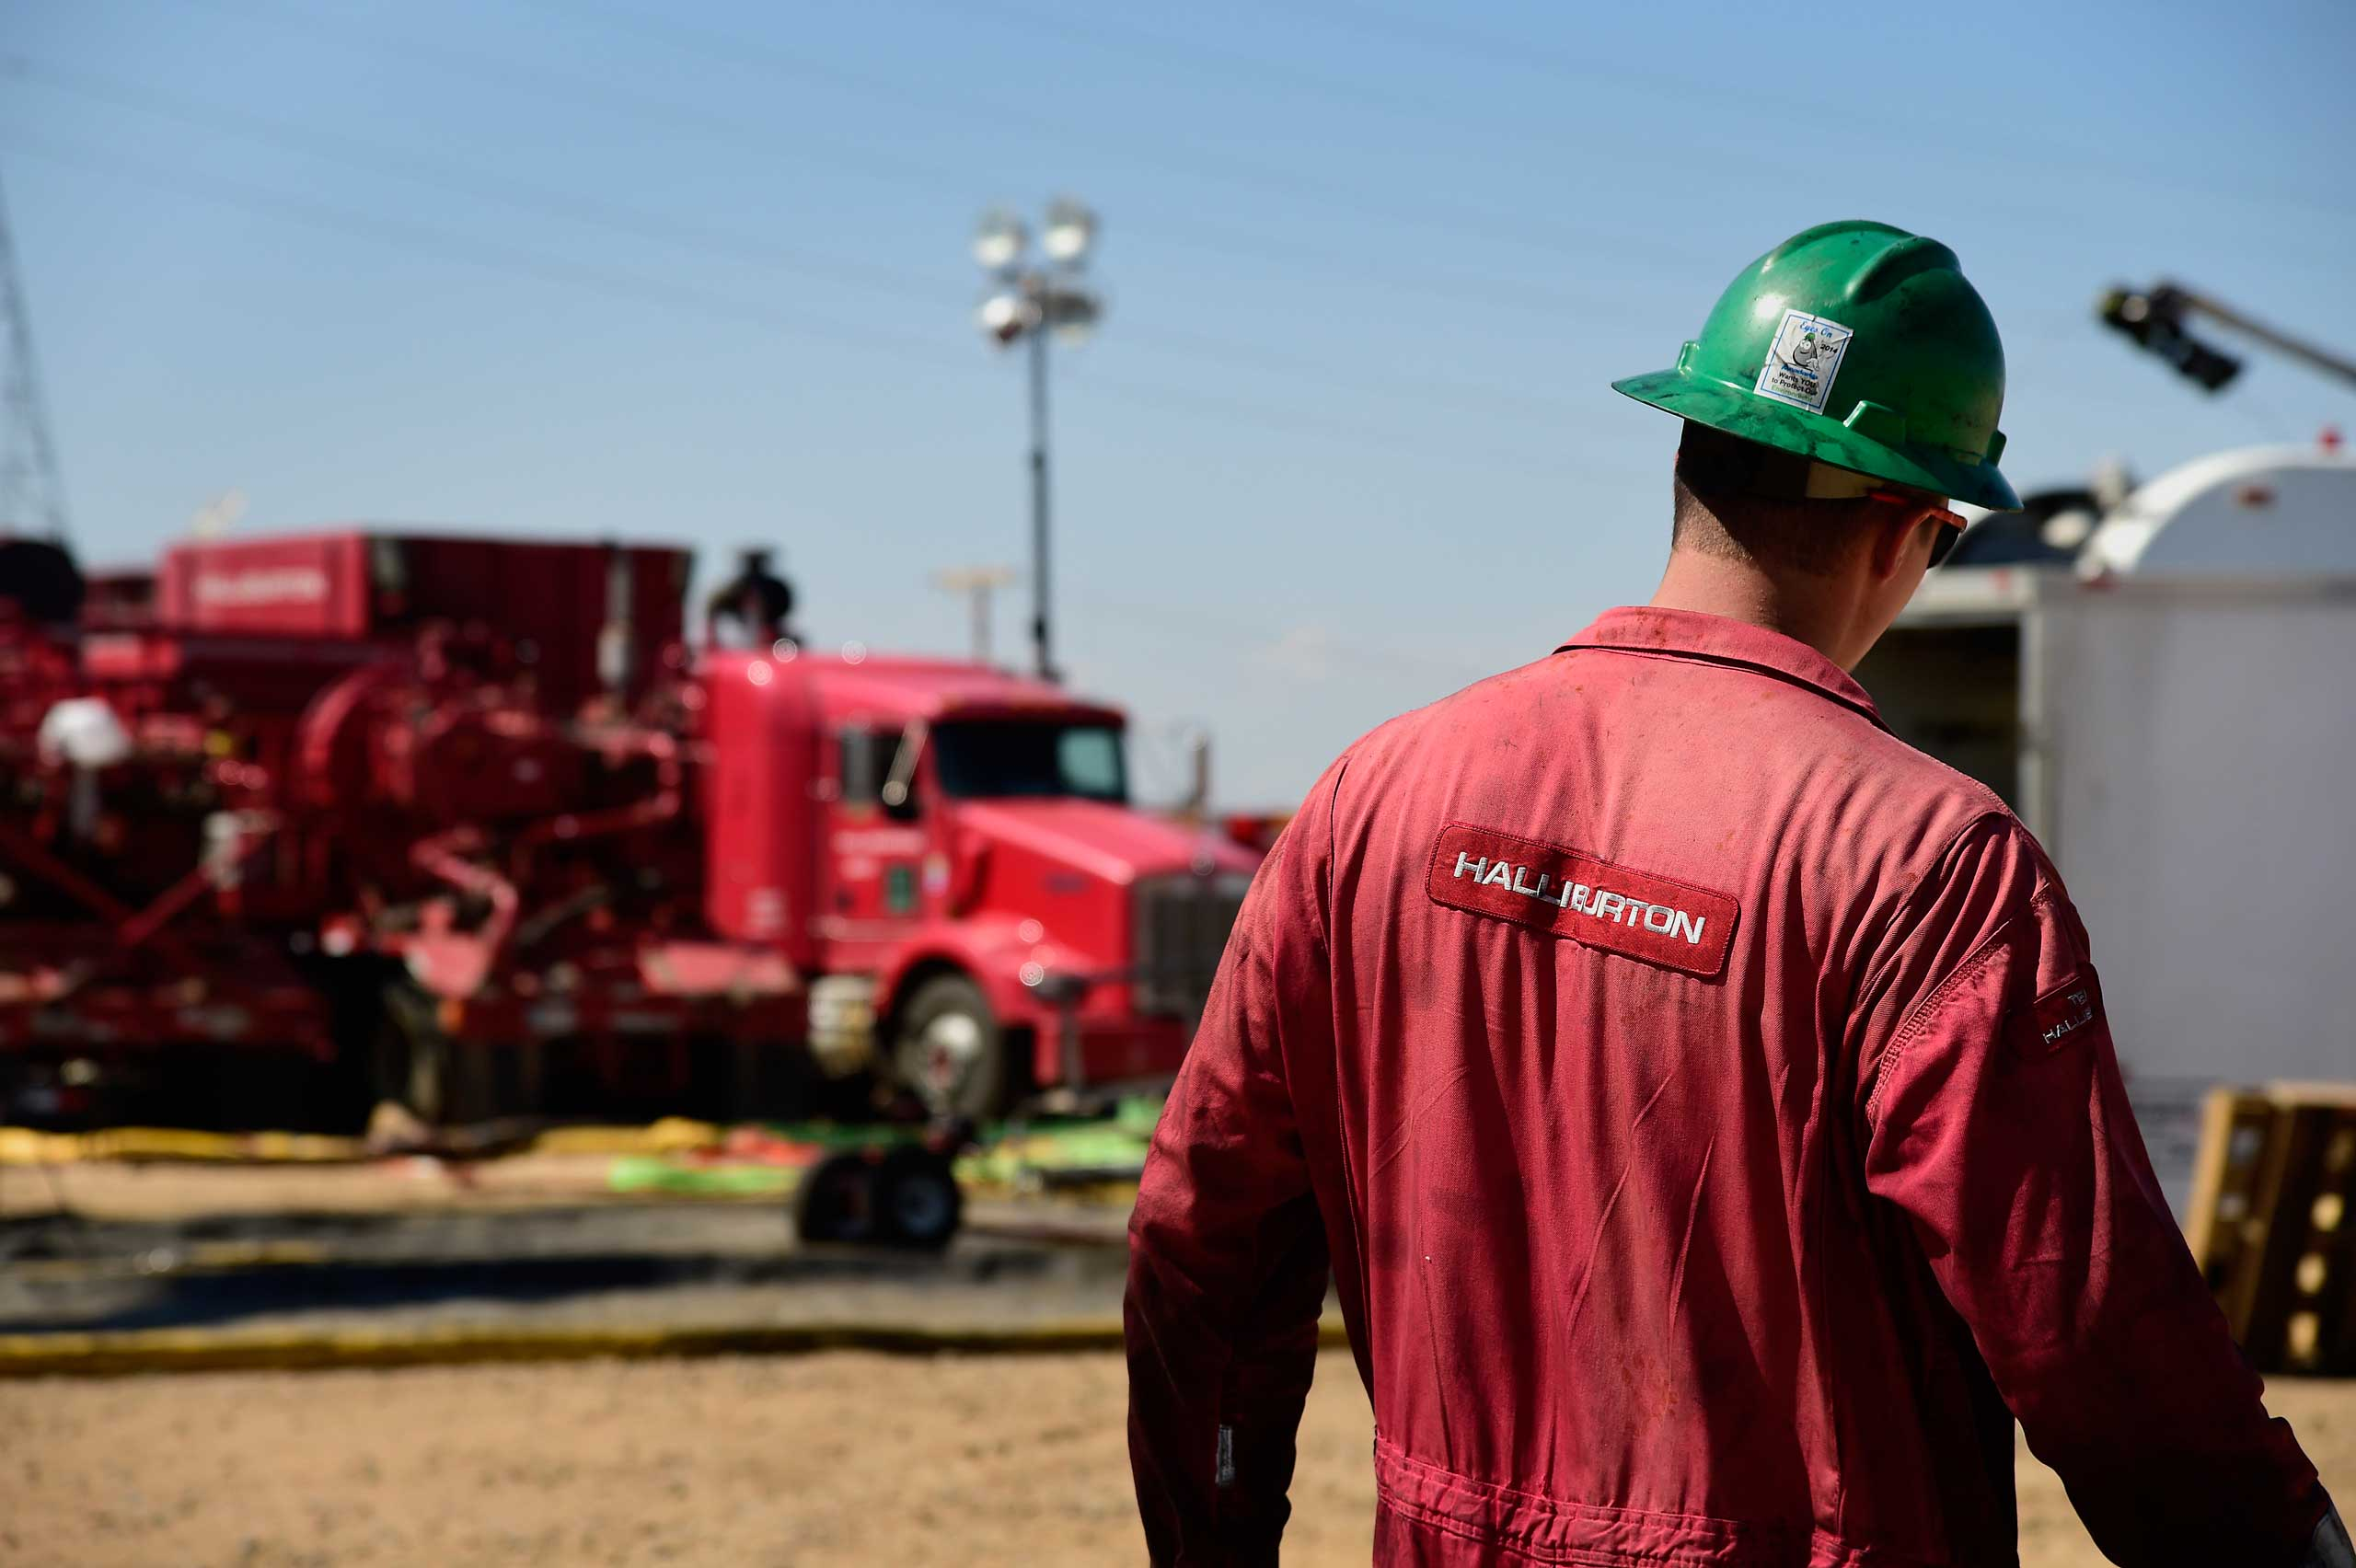 A Halliburton Co. worker walks through an Anadarko Petroleum Corp. hydraulic fracturing (fracking) site north of Dacono, Colo. on Aug. 12, 2014.